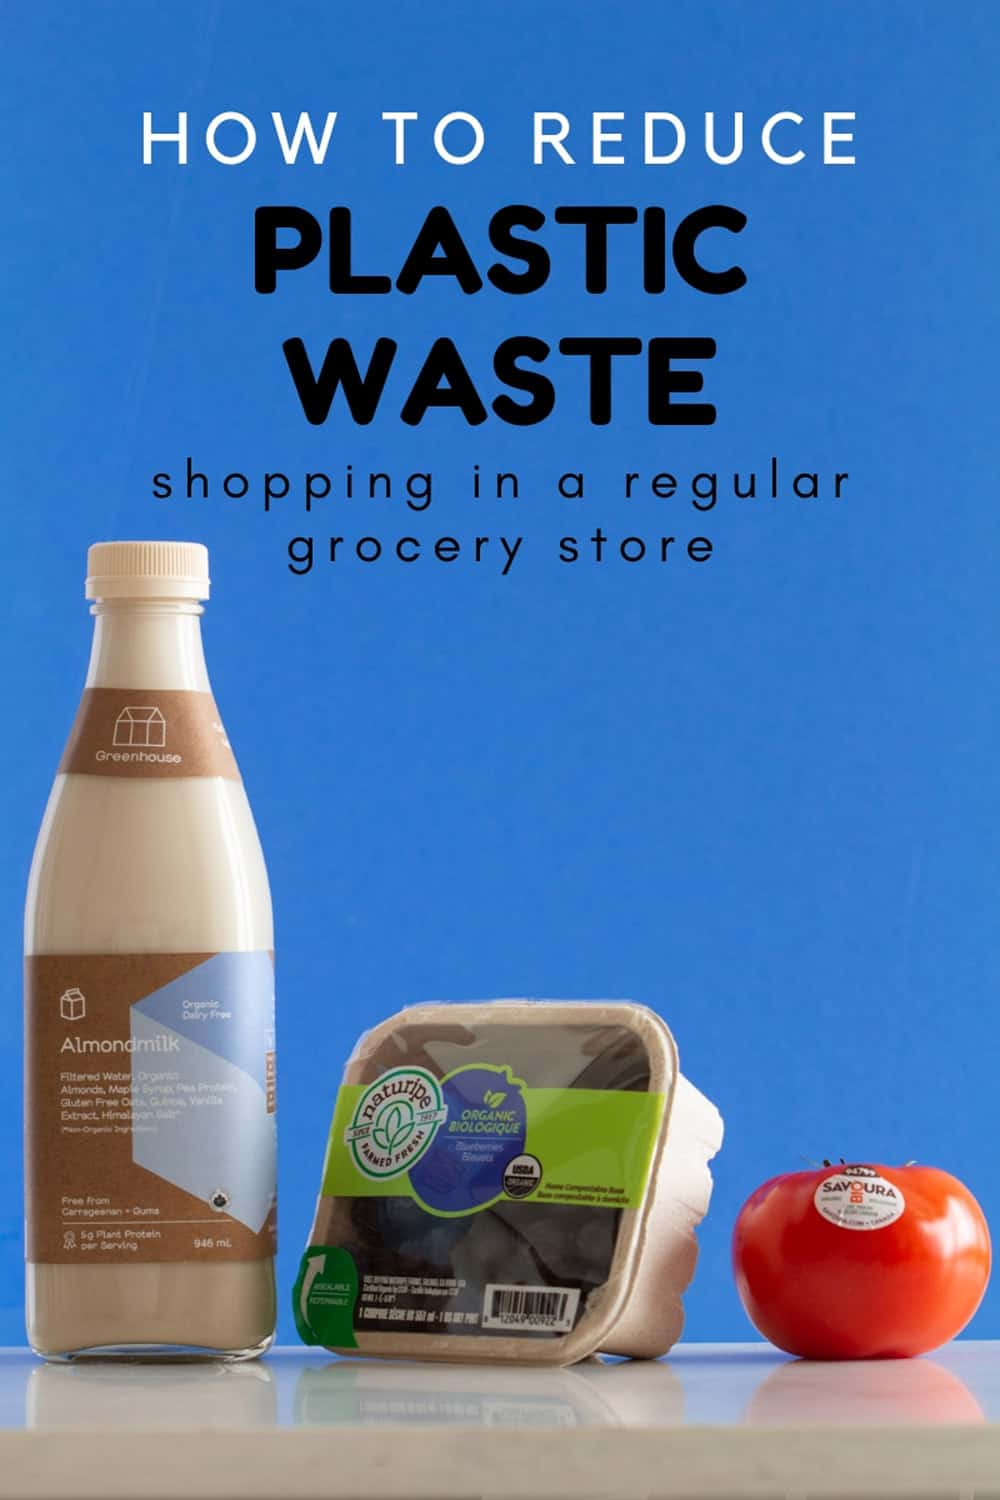 Glass Bottle with Almond Milk, Cardboard Box with Blueberries, Tomato with Sticker